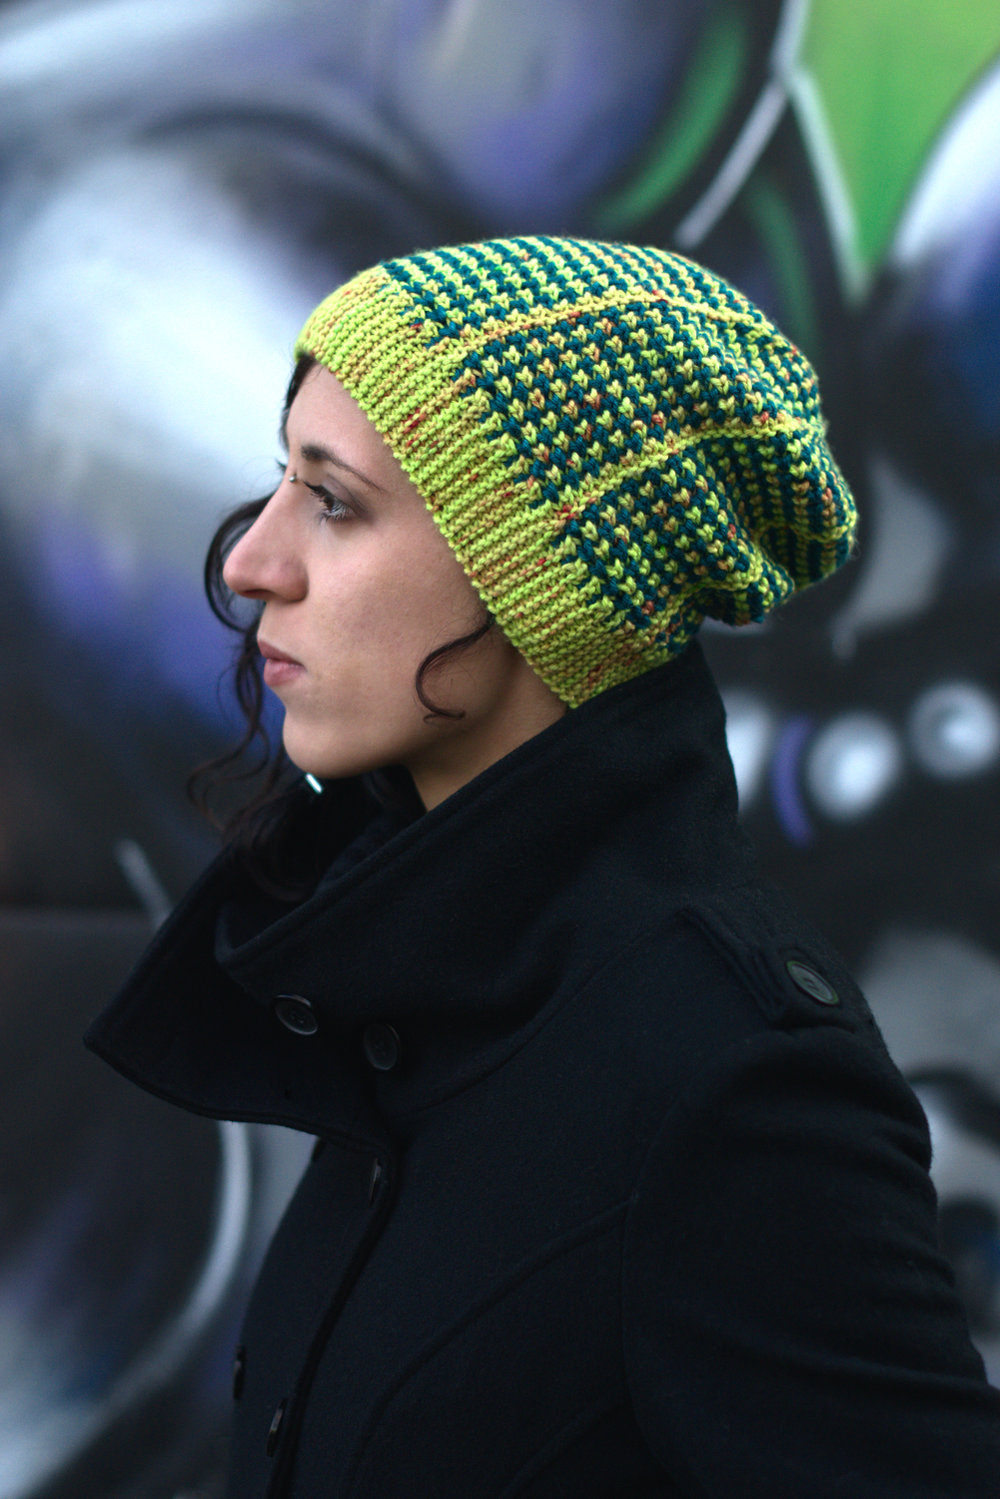 Kourserb reversible sideways knit slouchy hat for dk hand knitting yarn